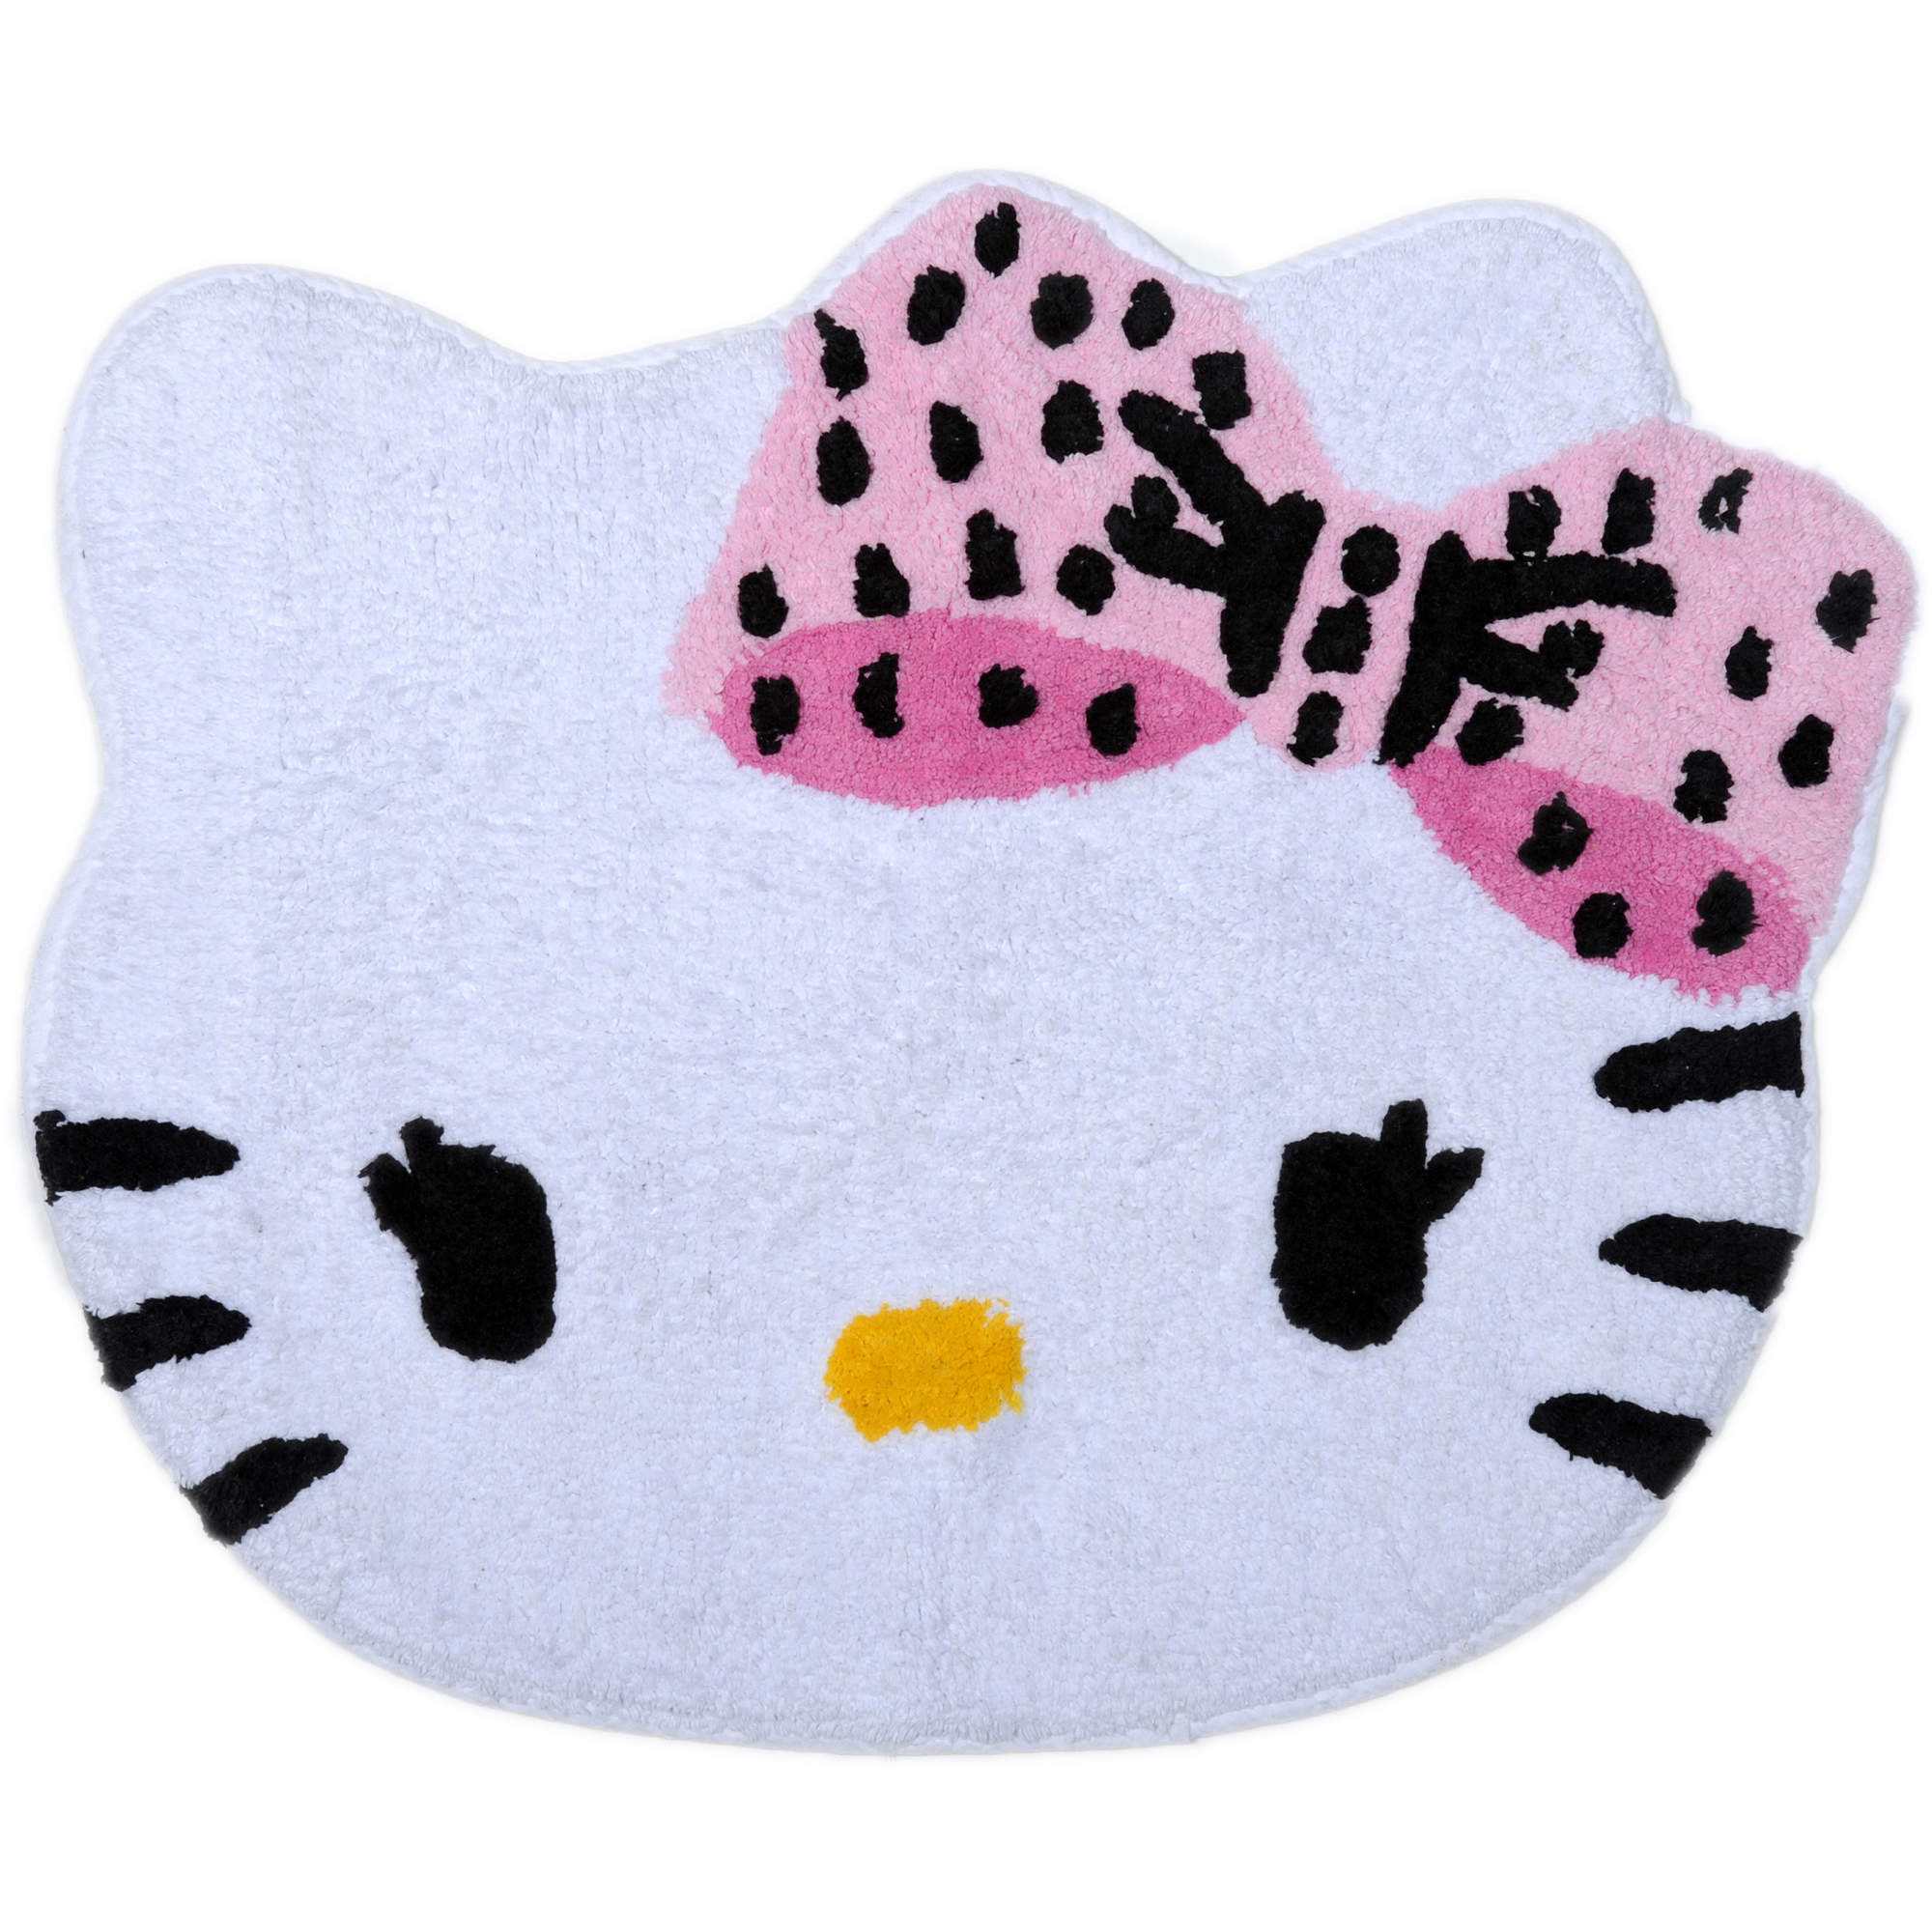 Hello kitty bathroom accessories - Hello Kitty Dots J Adore Tufted Bath Rug